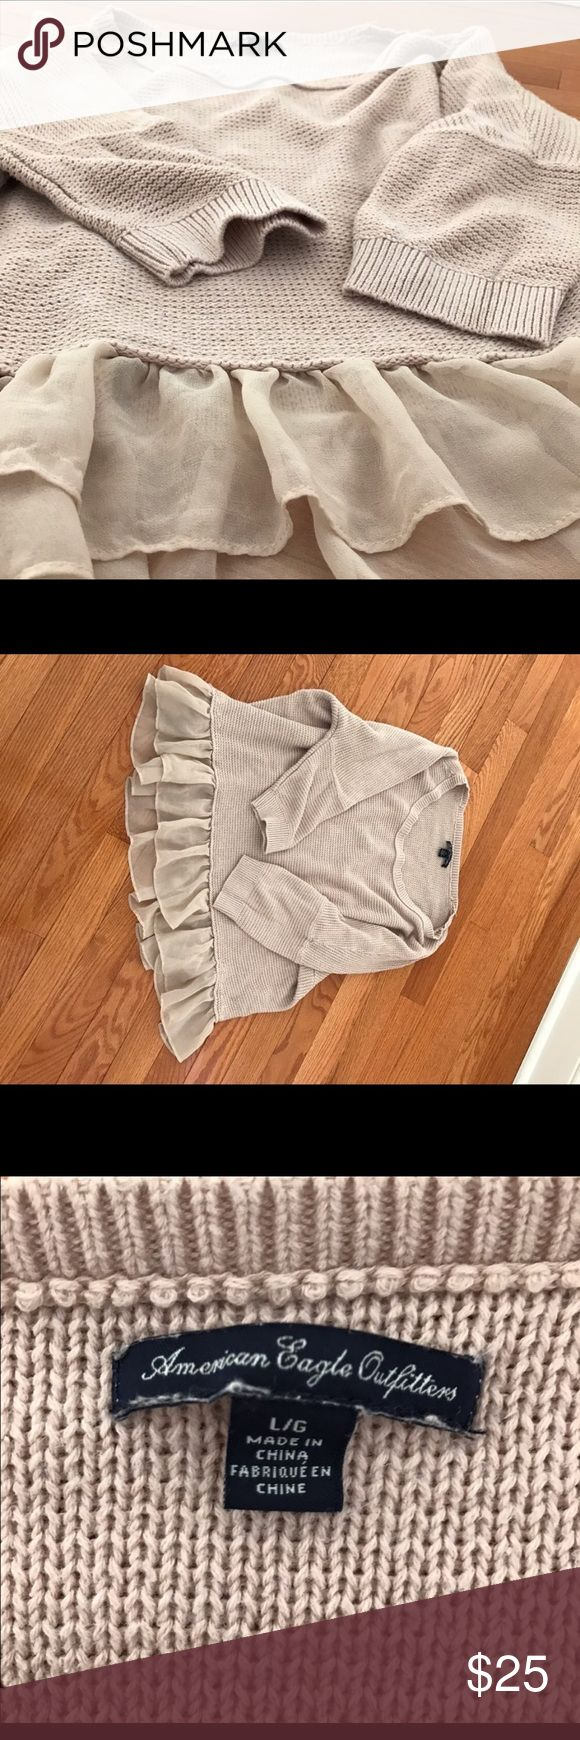 American Eagle Sweater American Eagle Sweater American Eagle Outfitters Tops Blouses